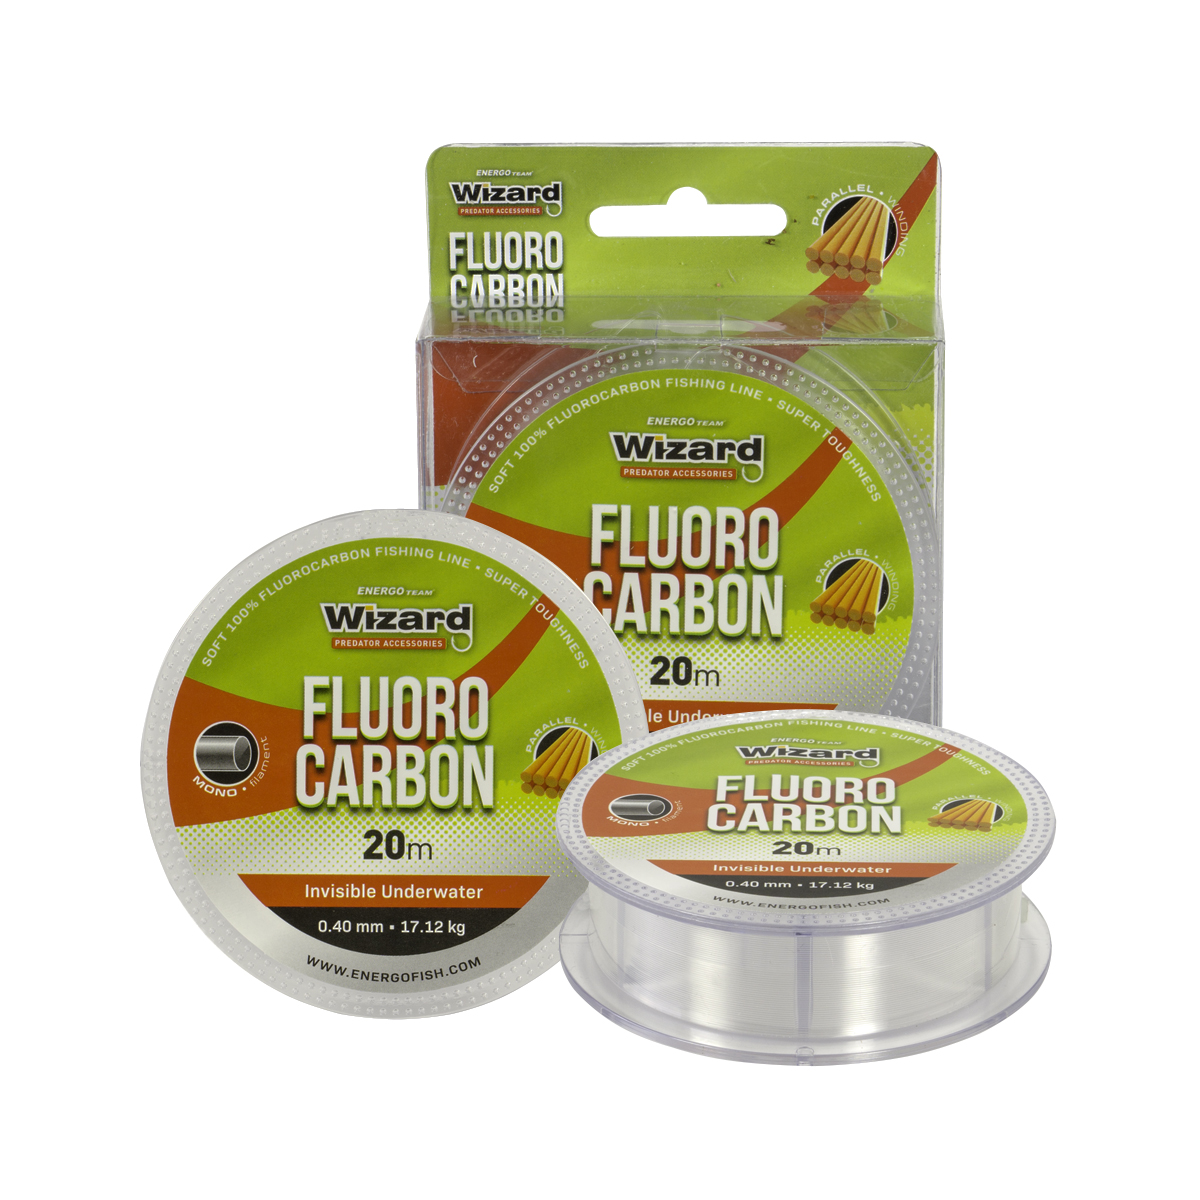 WIZARD Fluorocarbon Transparent - 0.30mm/20m/12.28kg